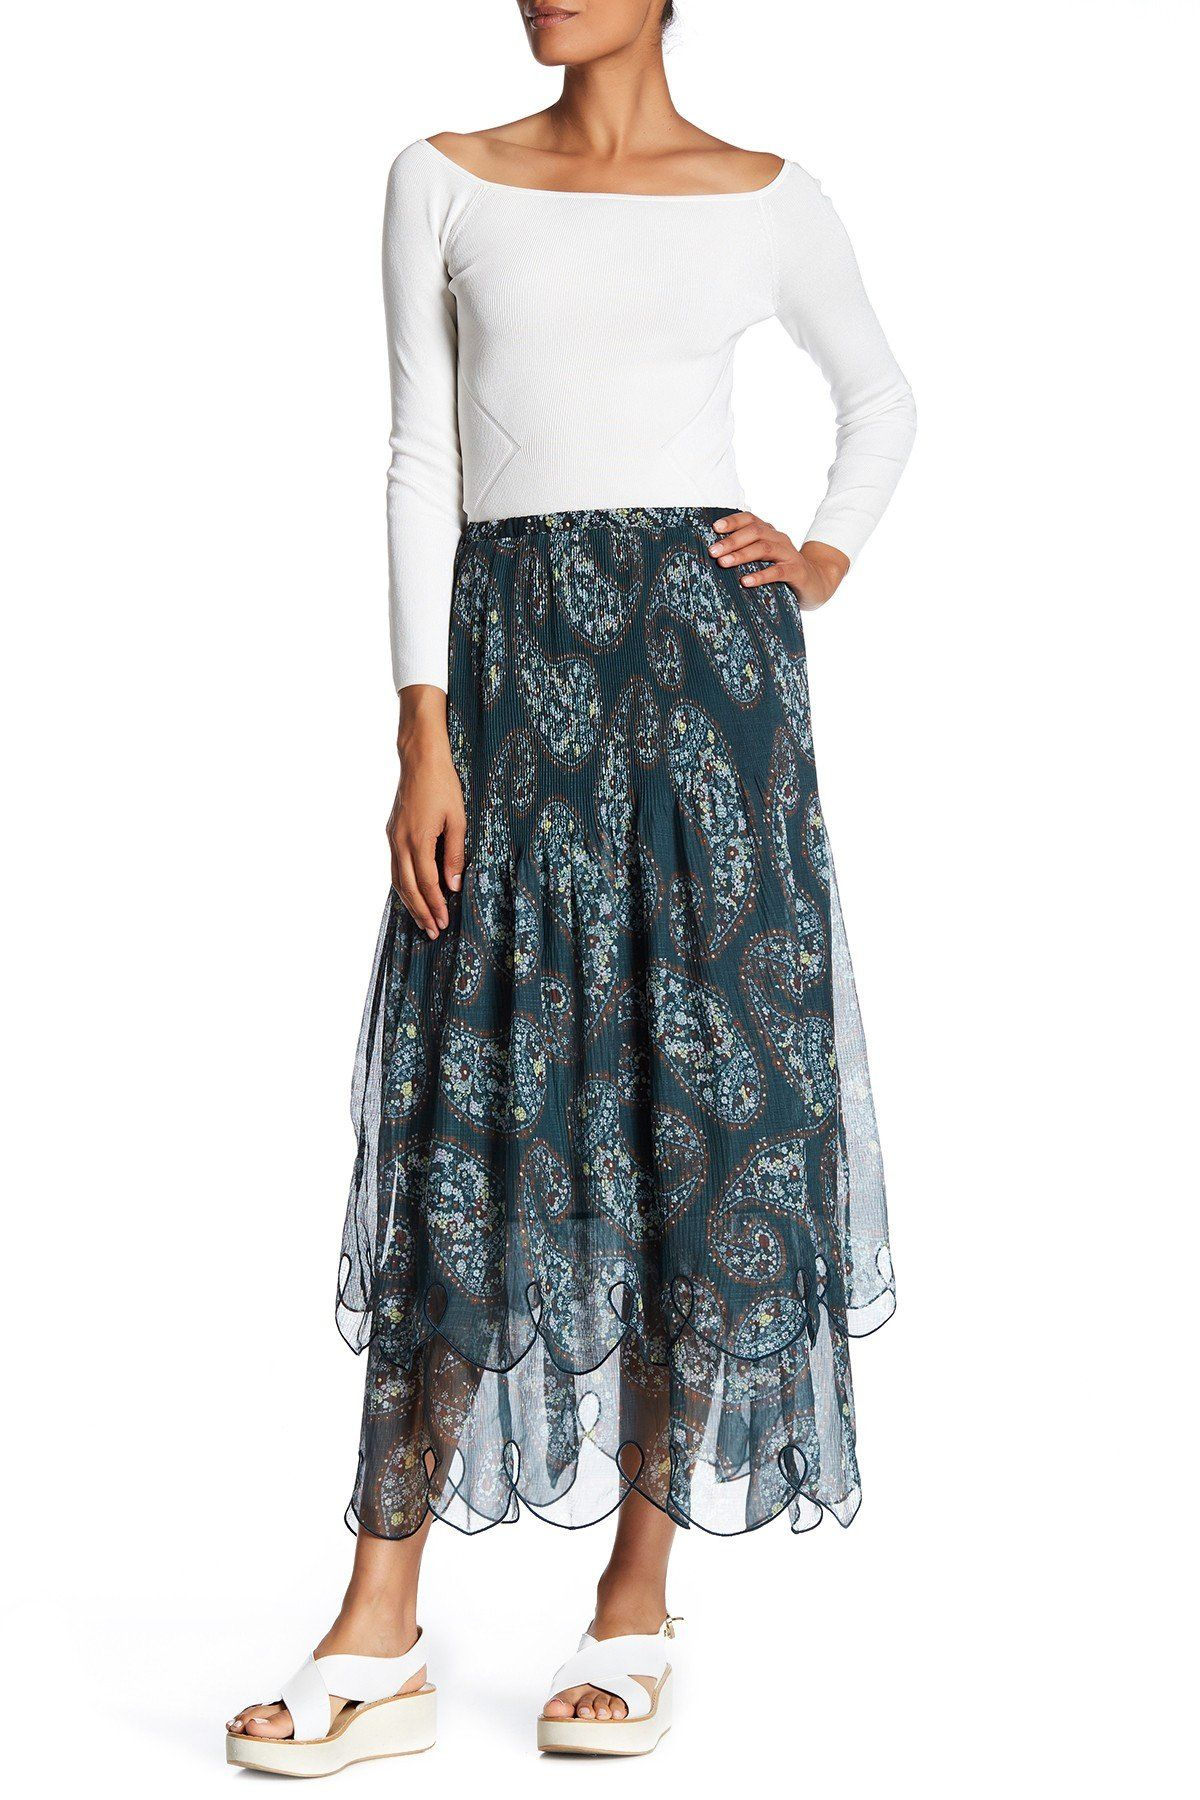 ffefc2e45bd1 Floral Paisley Print Tiered Skirt | Products | Tiered skirts, See by ...